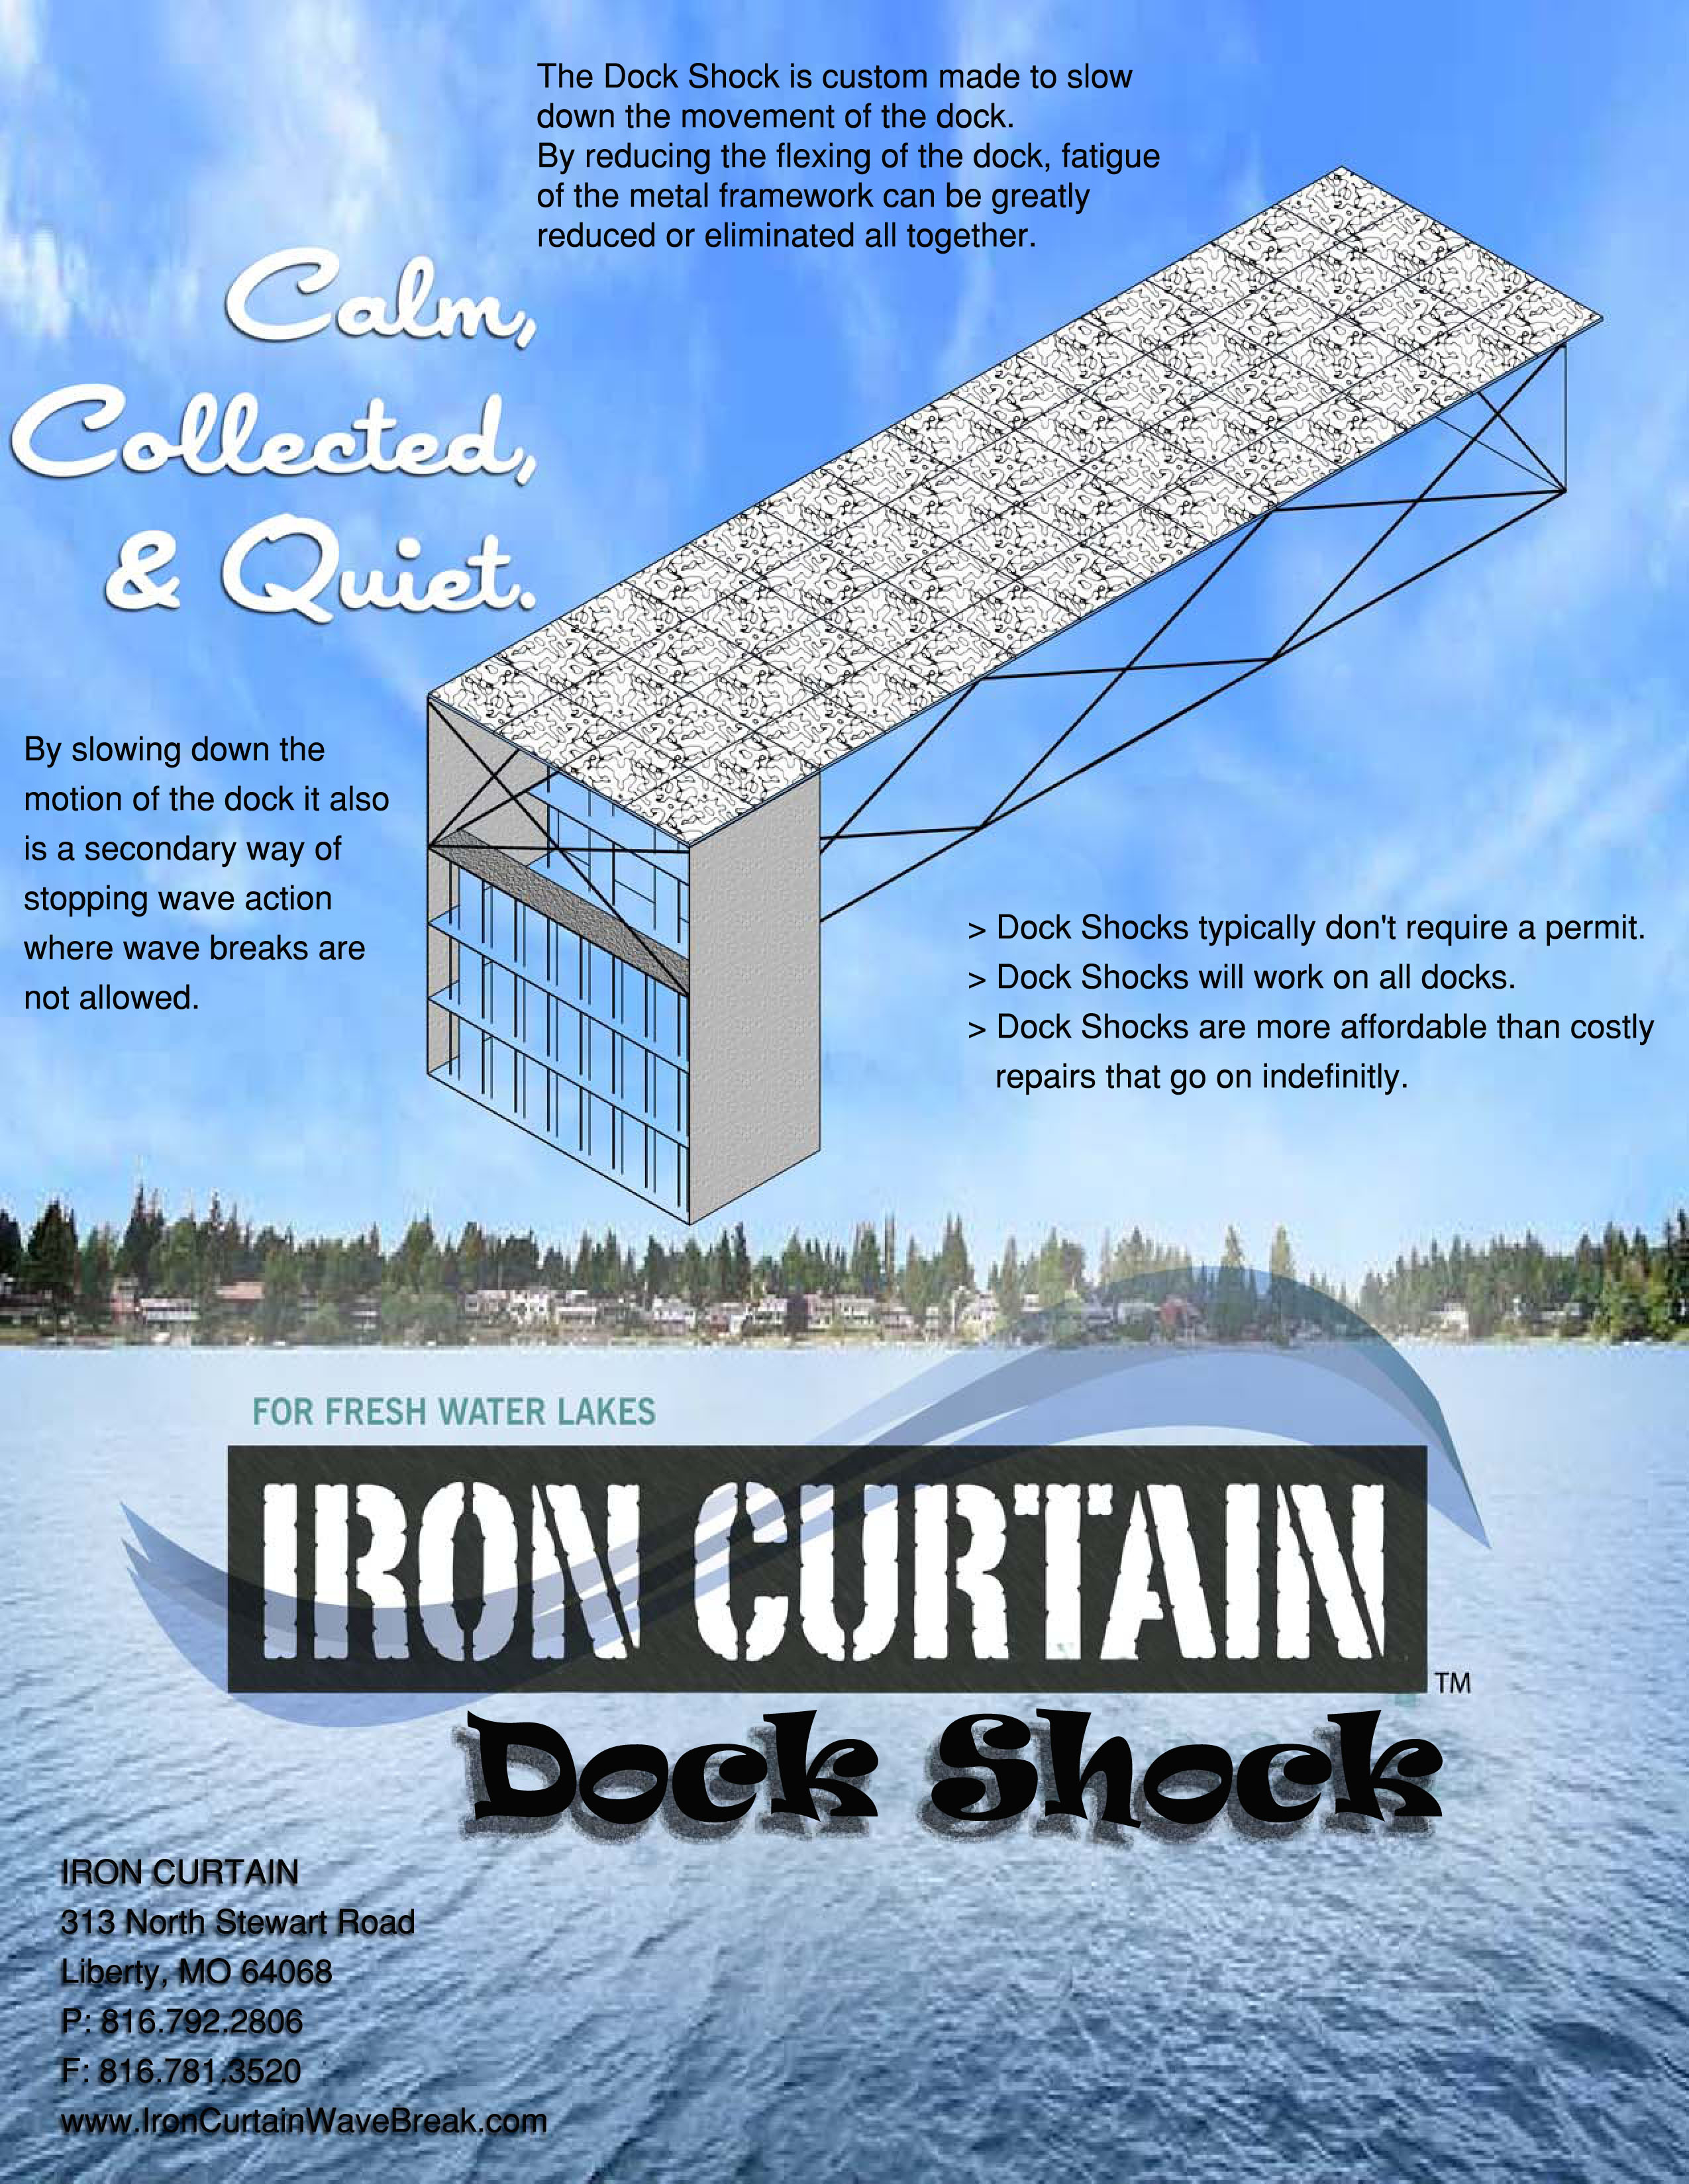 Iron Curtain Dock Shock